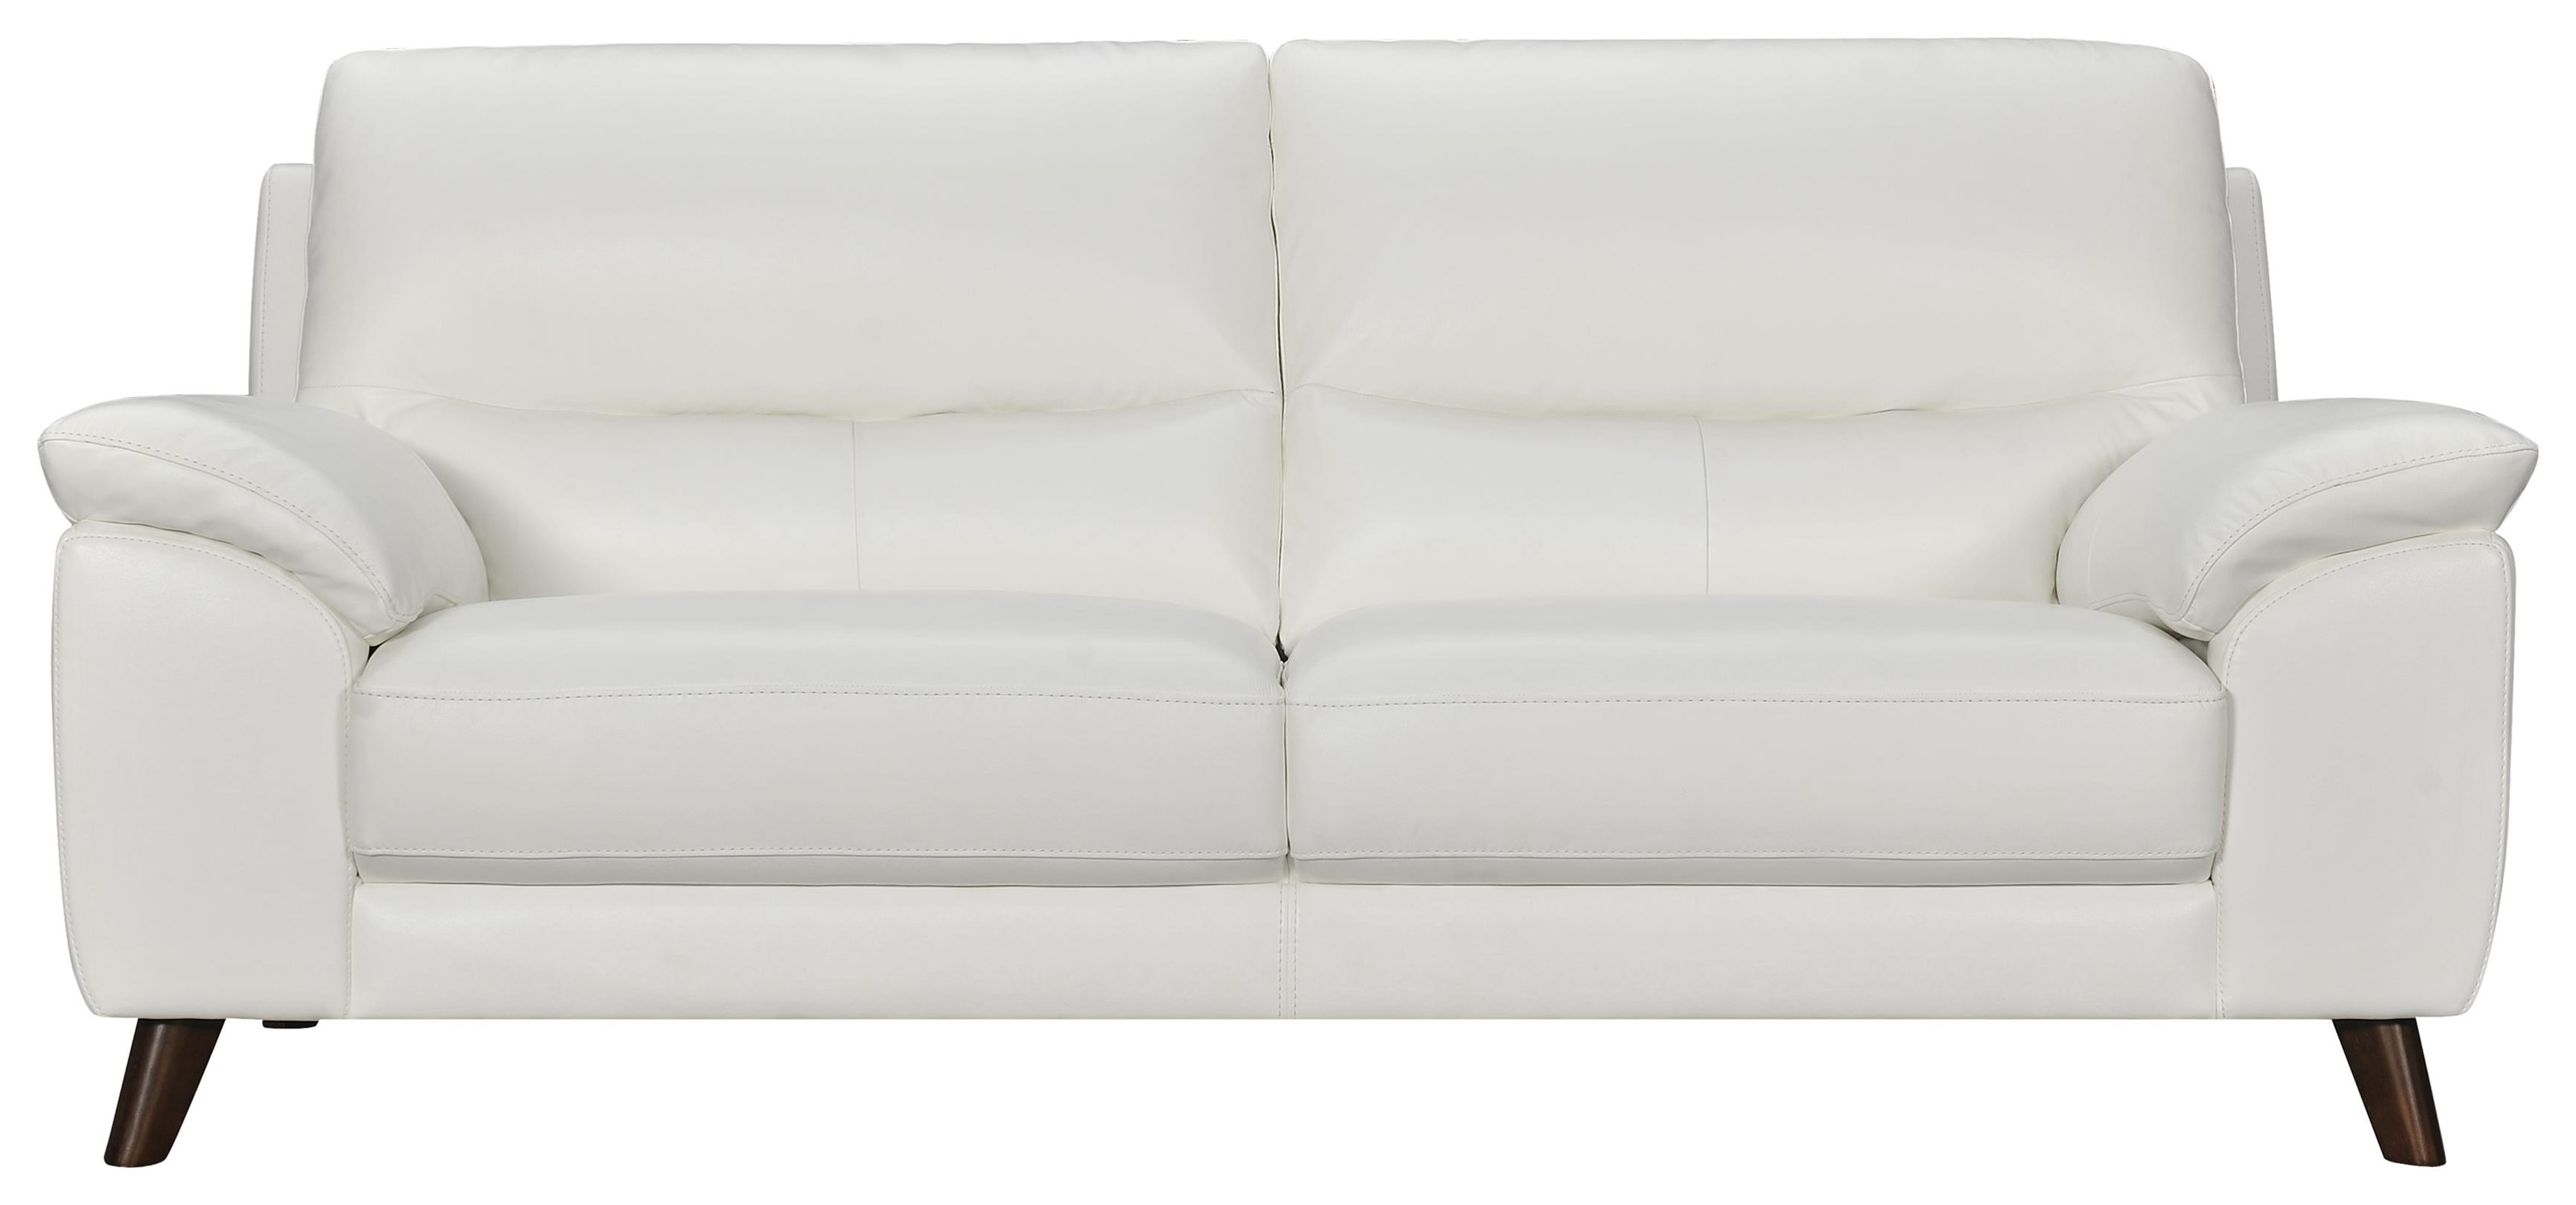 Frankie Sofa by Violino at HomeWorld Furniture